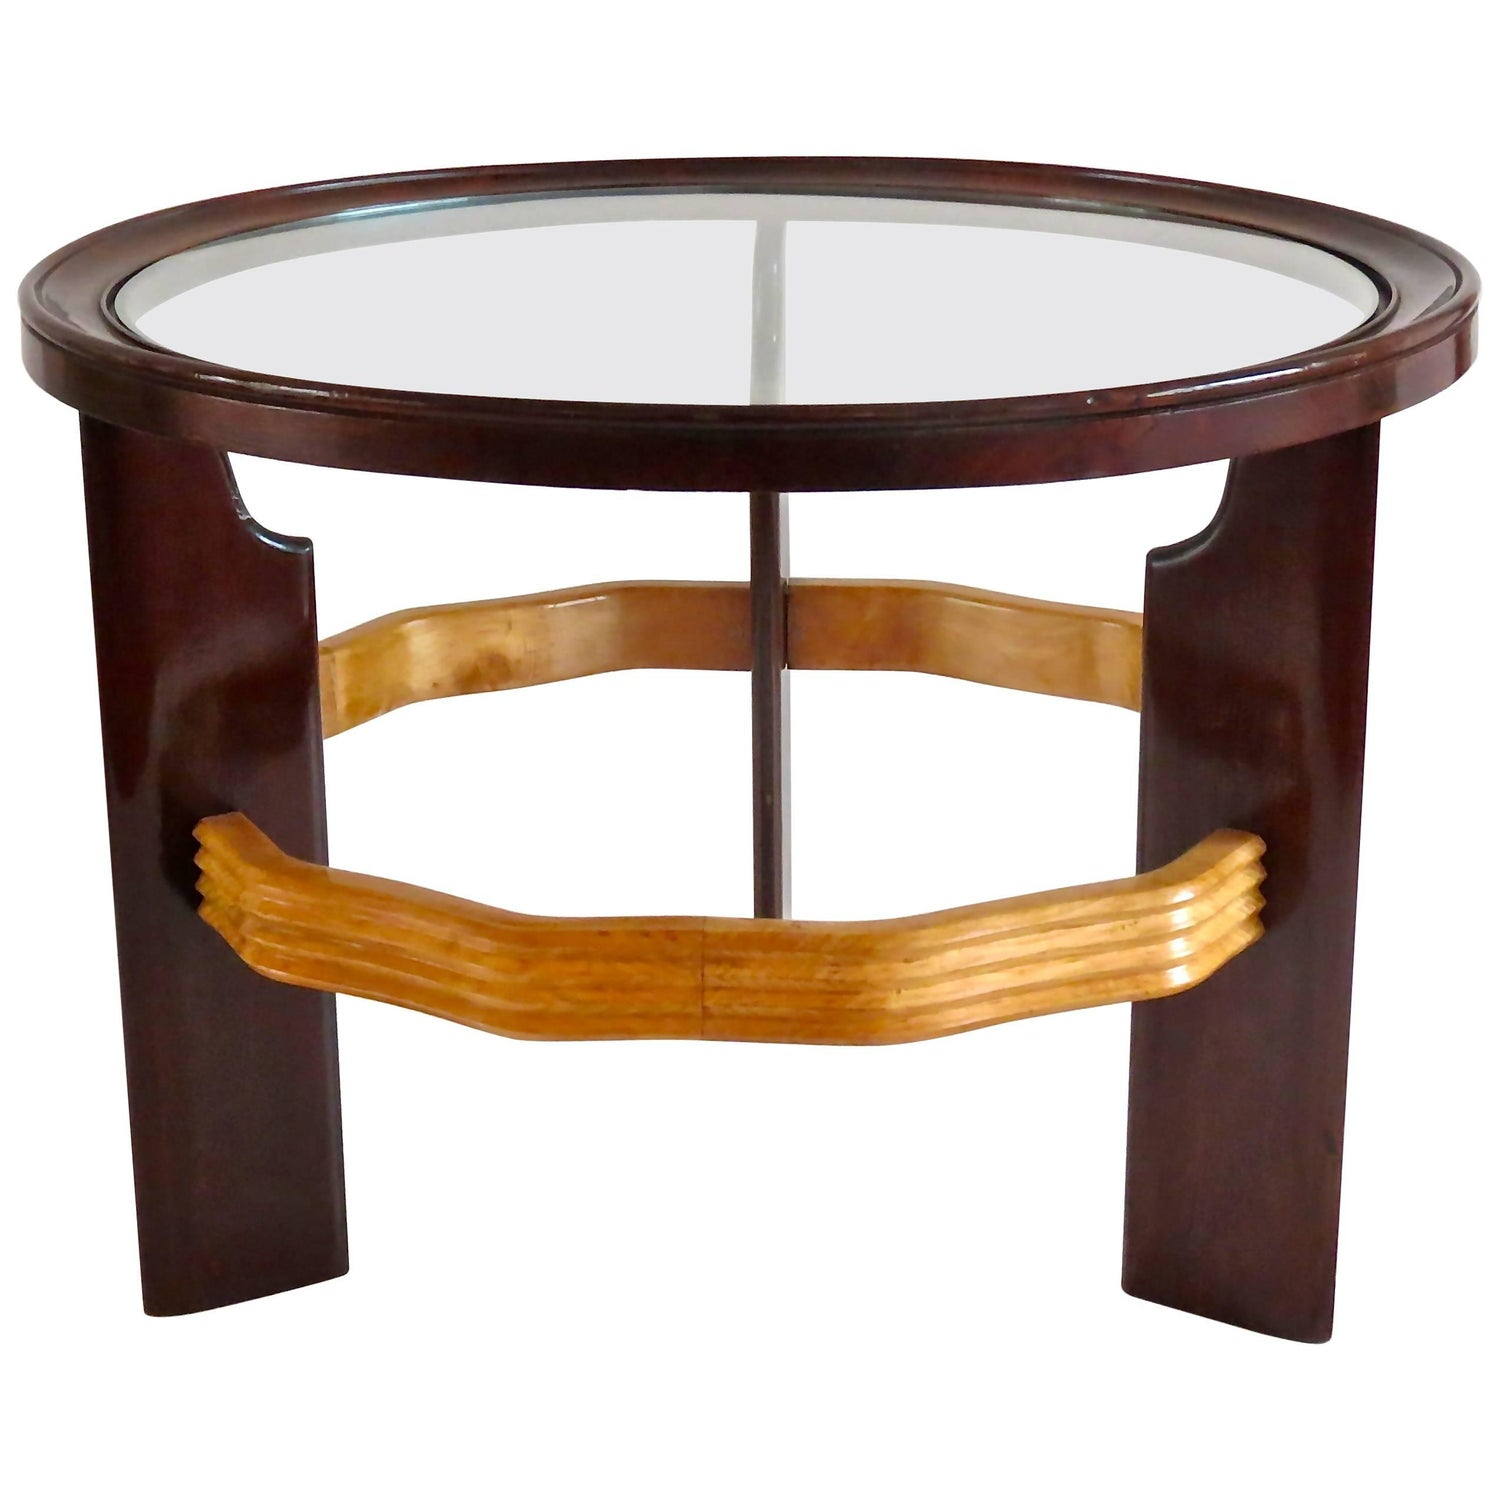 1930s Coffee and Cocktail Tables 323 For Sale at 1stdibs